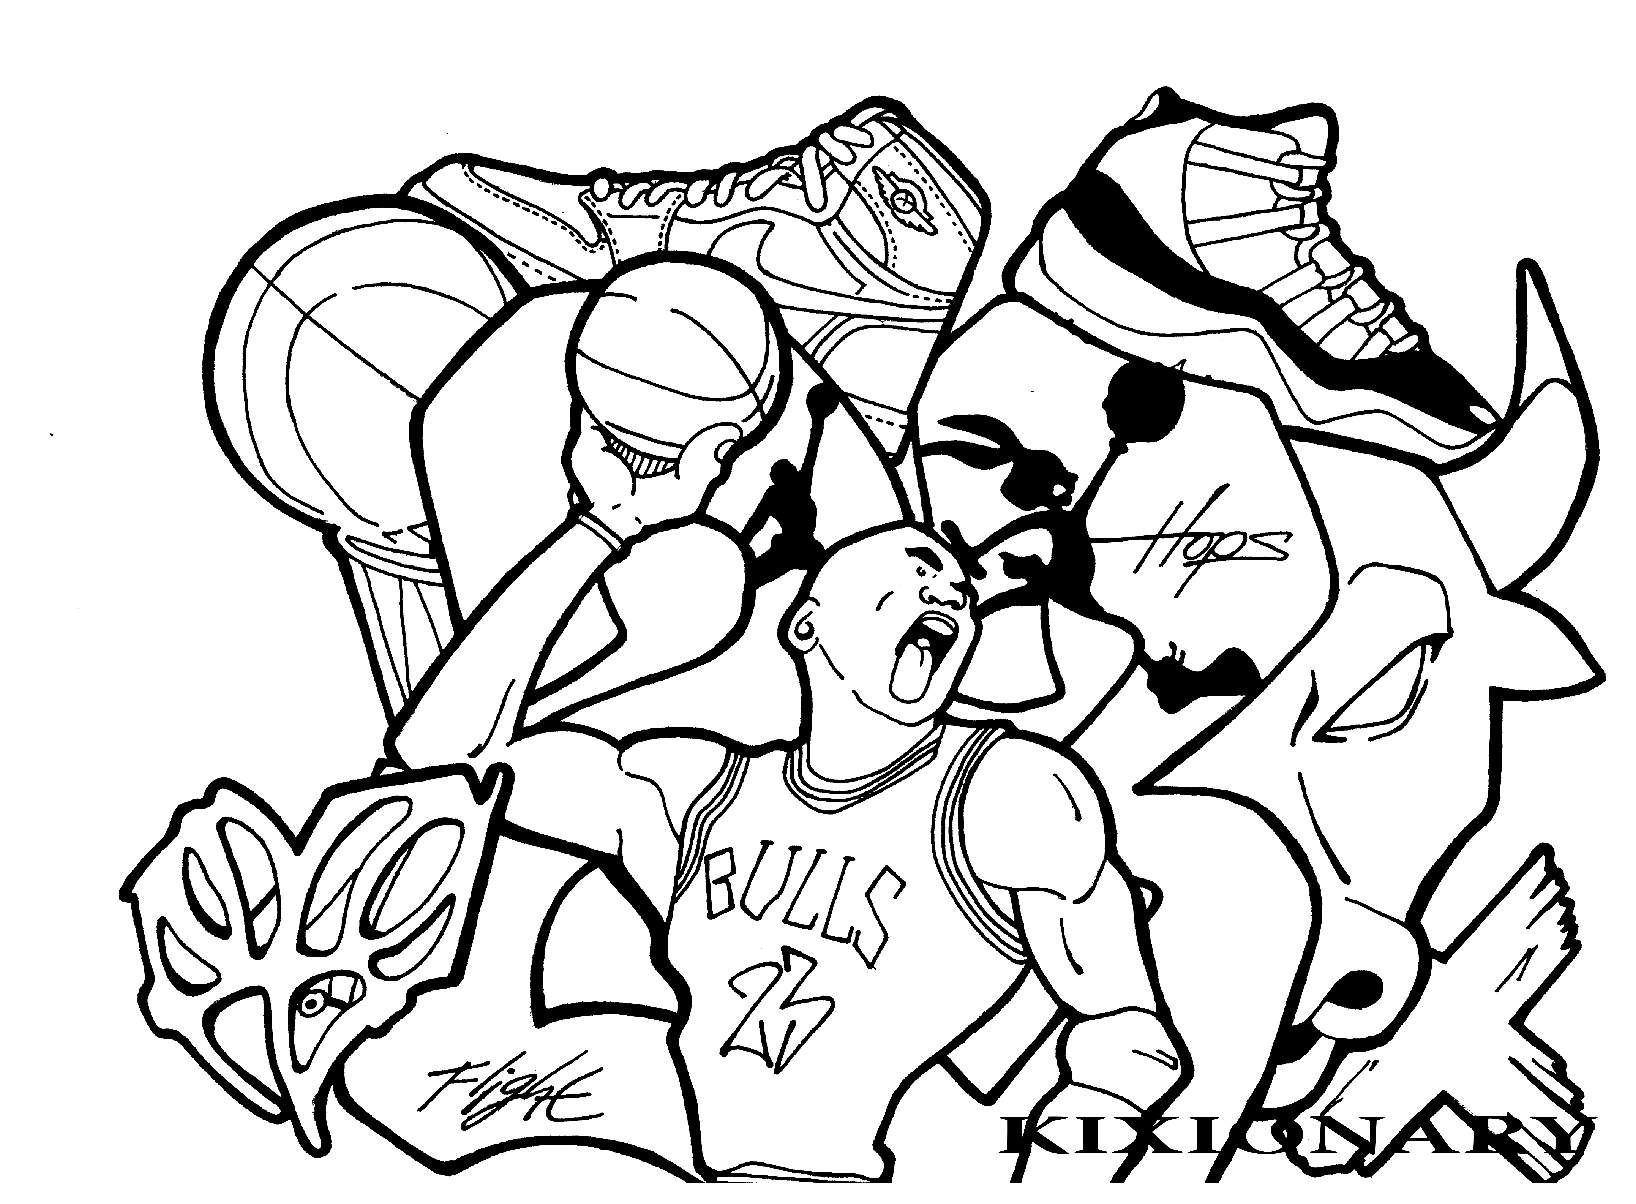 Coloring pages for jordans - Free Coloring Page Coloring Adult Graffiti Michael Jordan By Kixionary